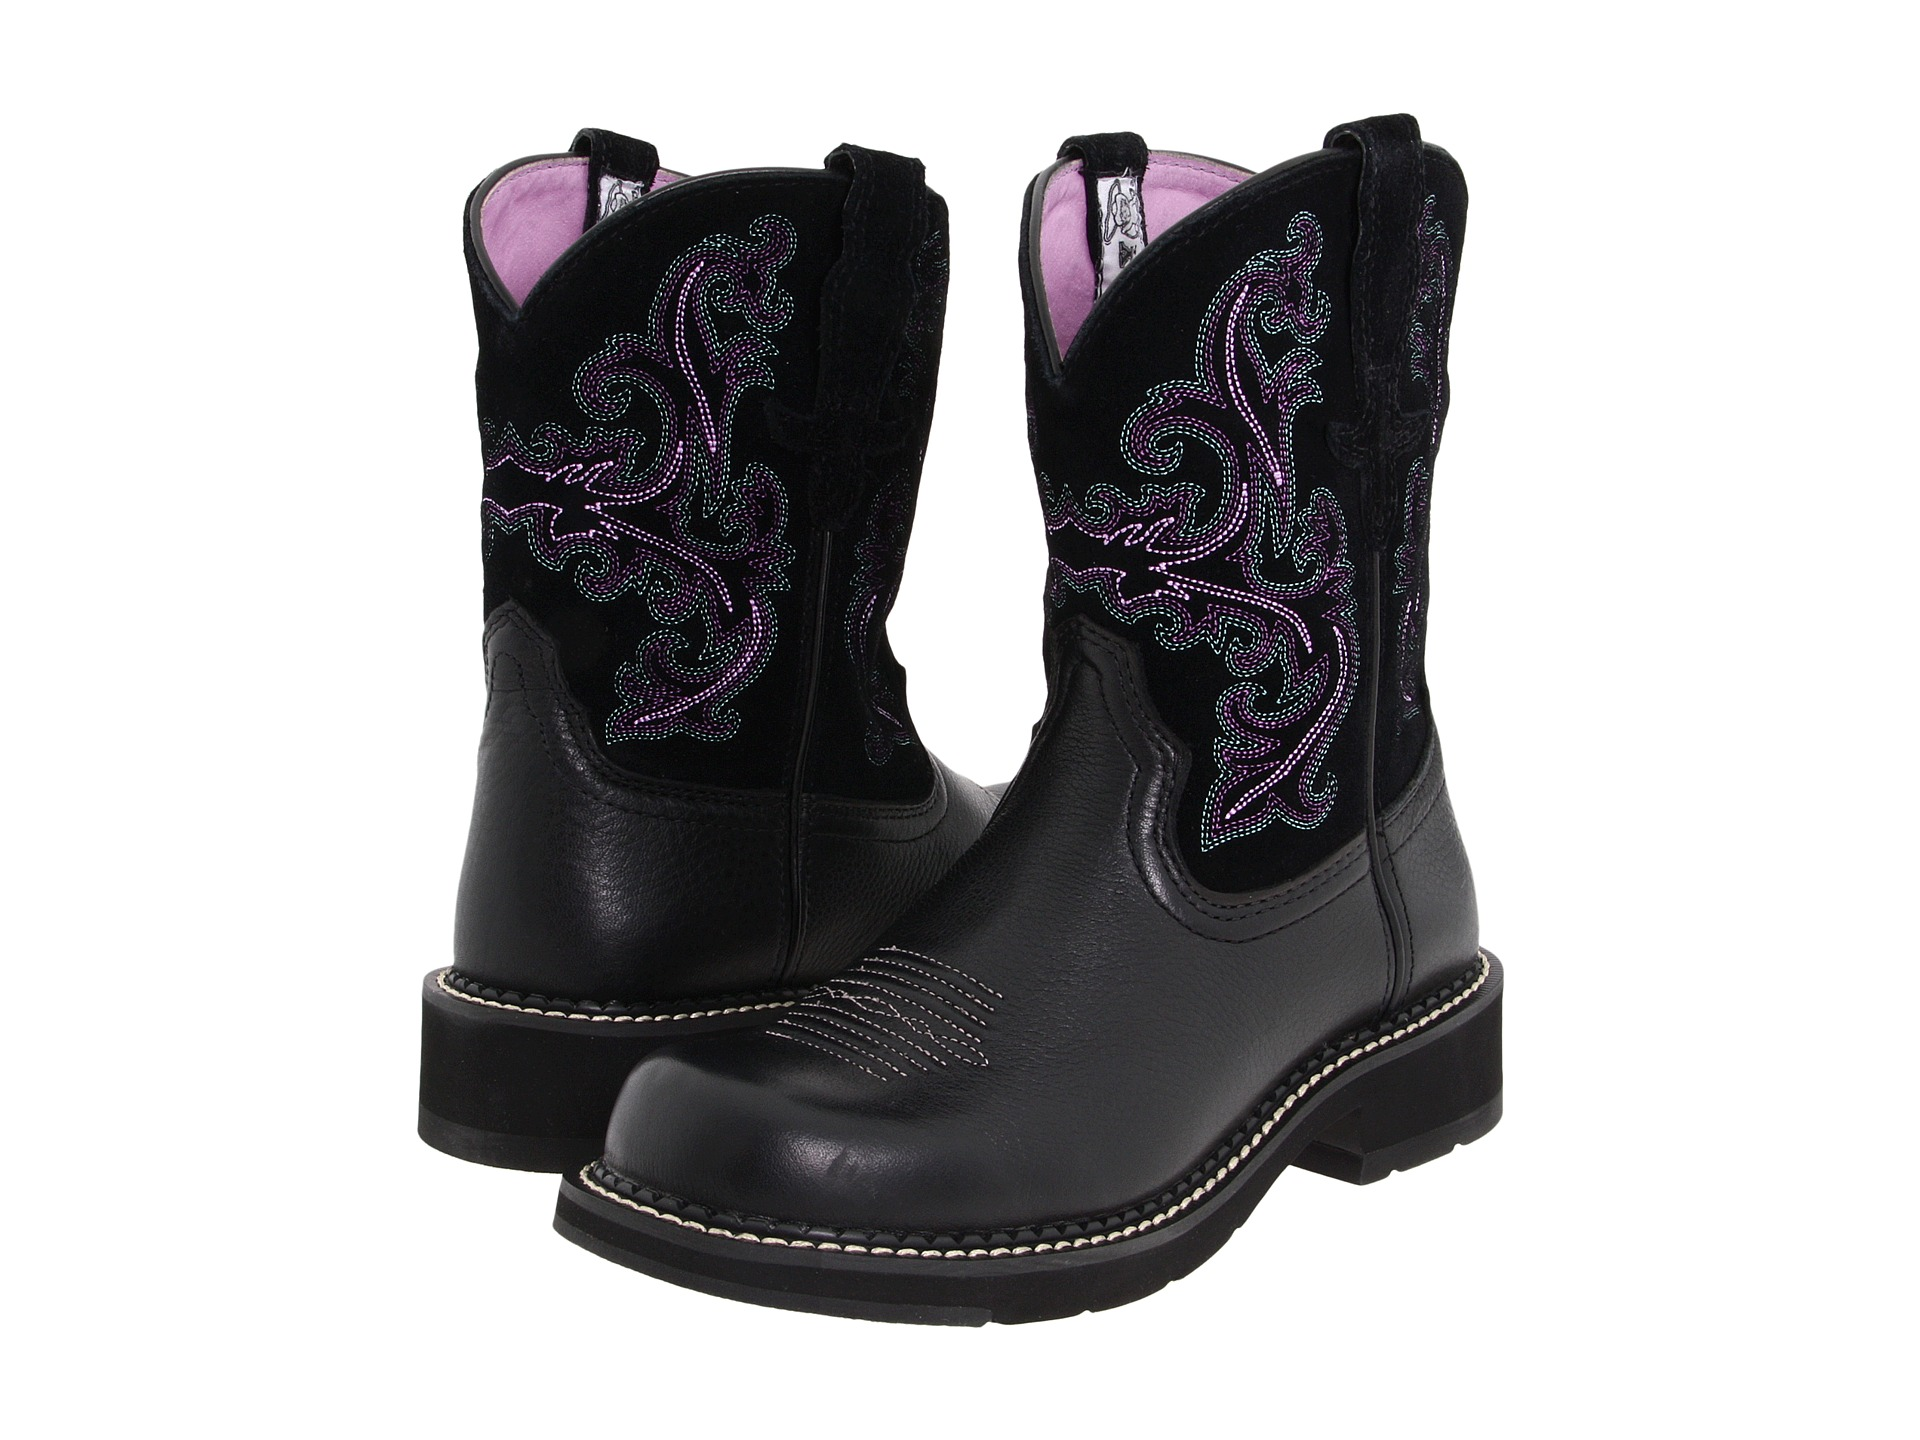 Ariat Fatbaby Sheila - Zappos.com Free Shipping BOTH Ways